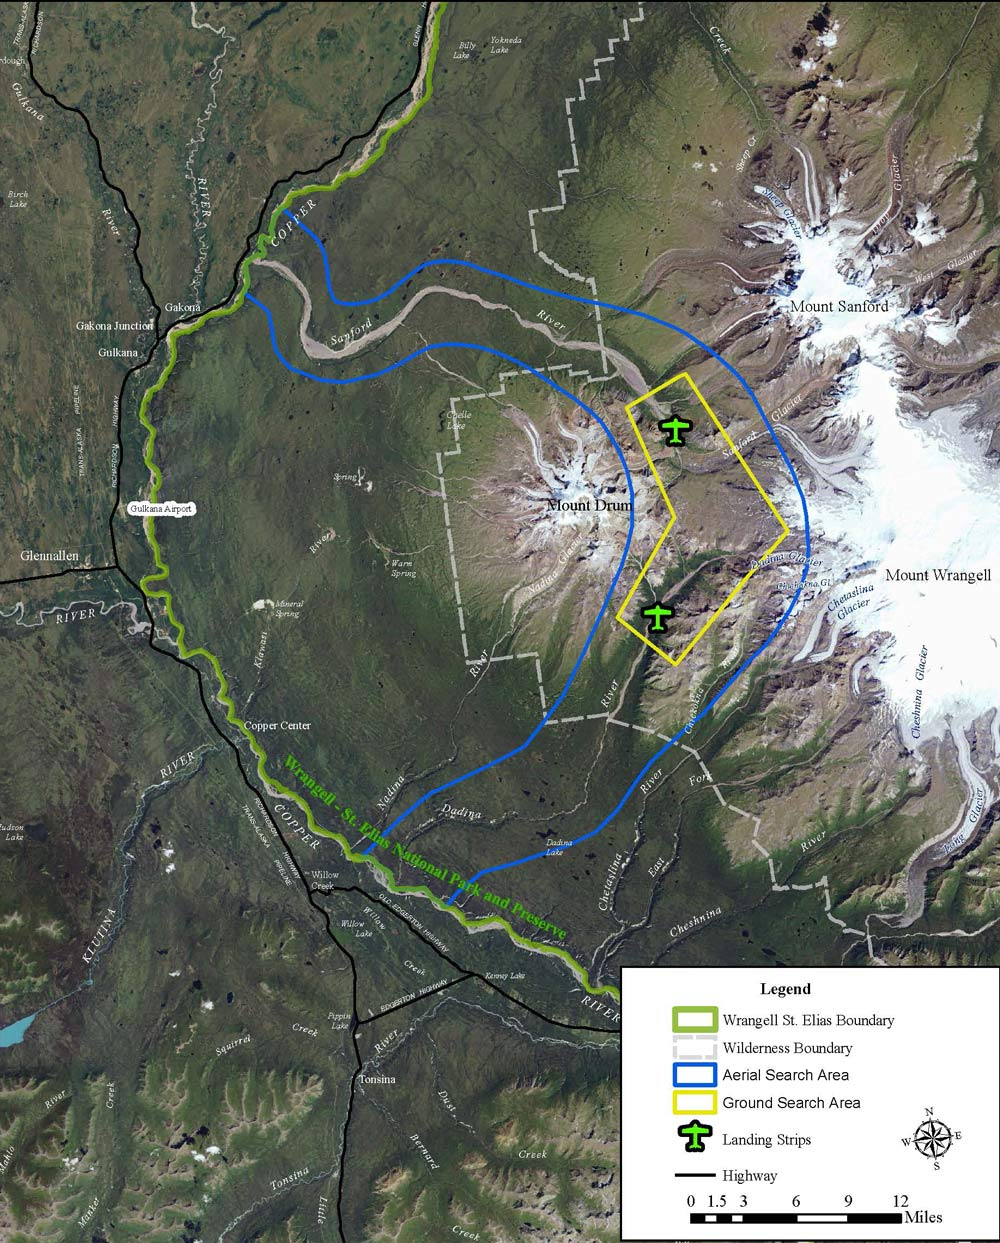 satellite imagery map depicting large, snowy mountains on the east side and flat, green valleys to the east. a wide river labelled 'sanford river' flows past a mountain named mount drum